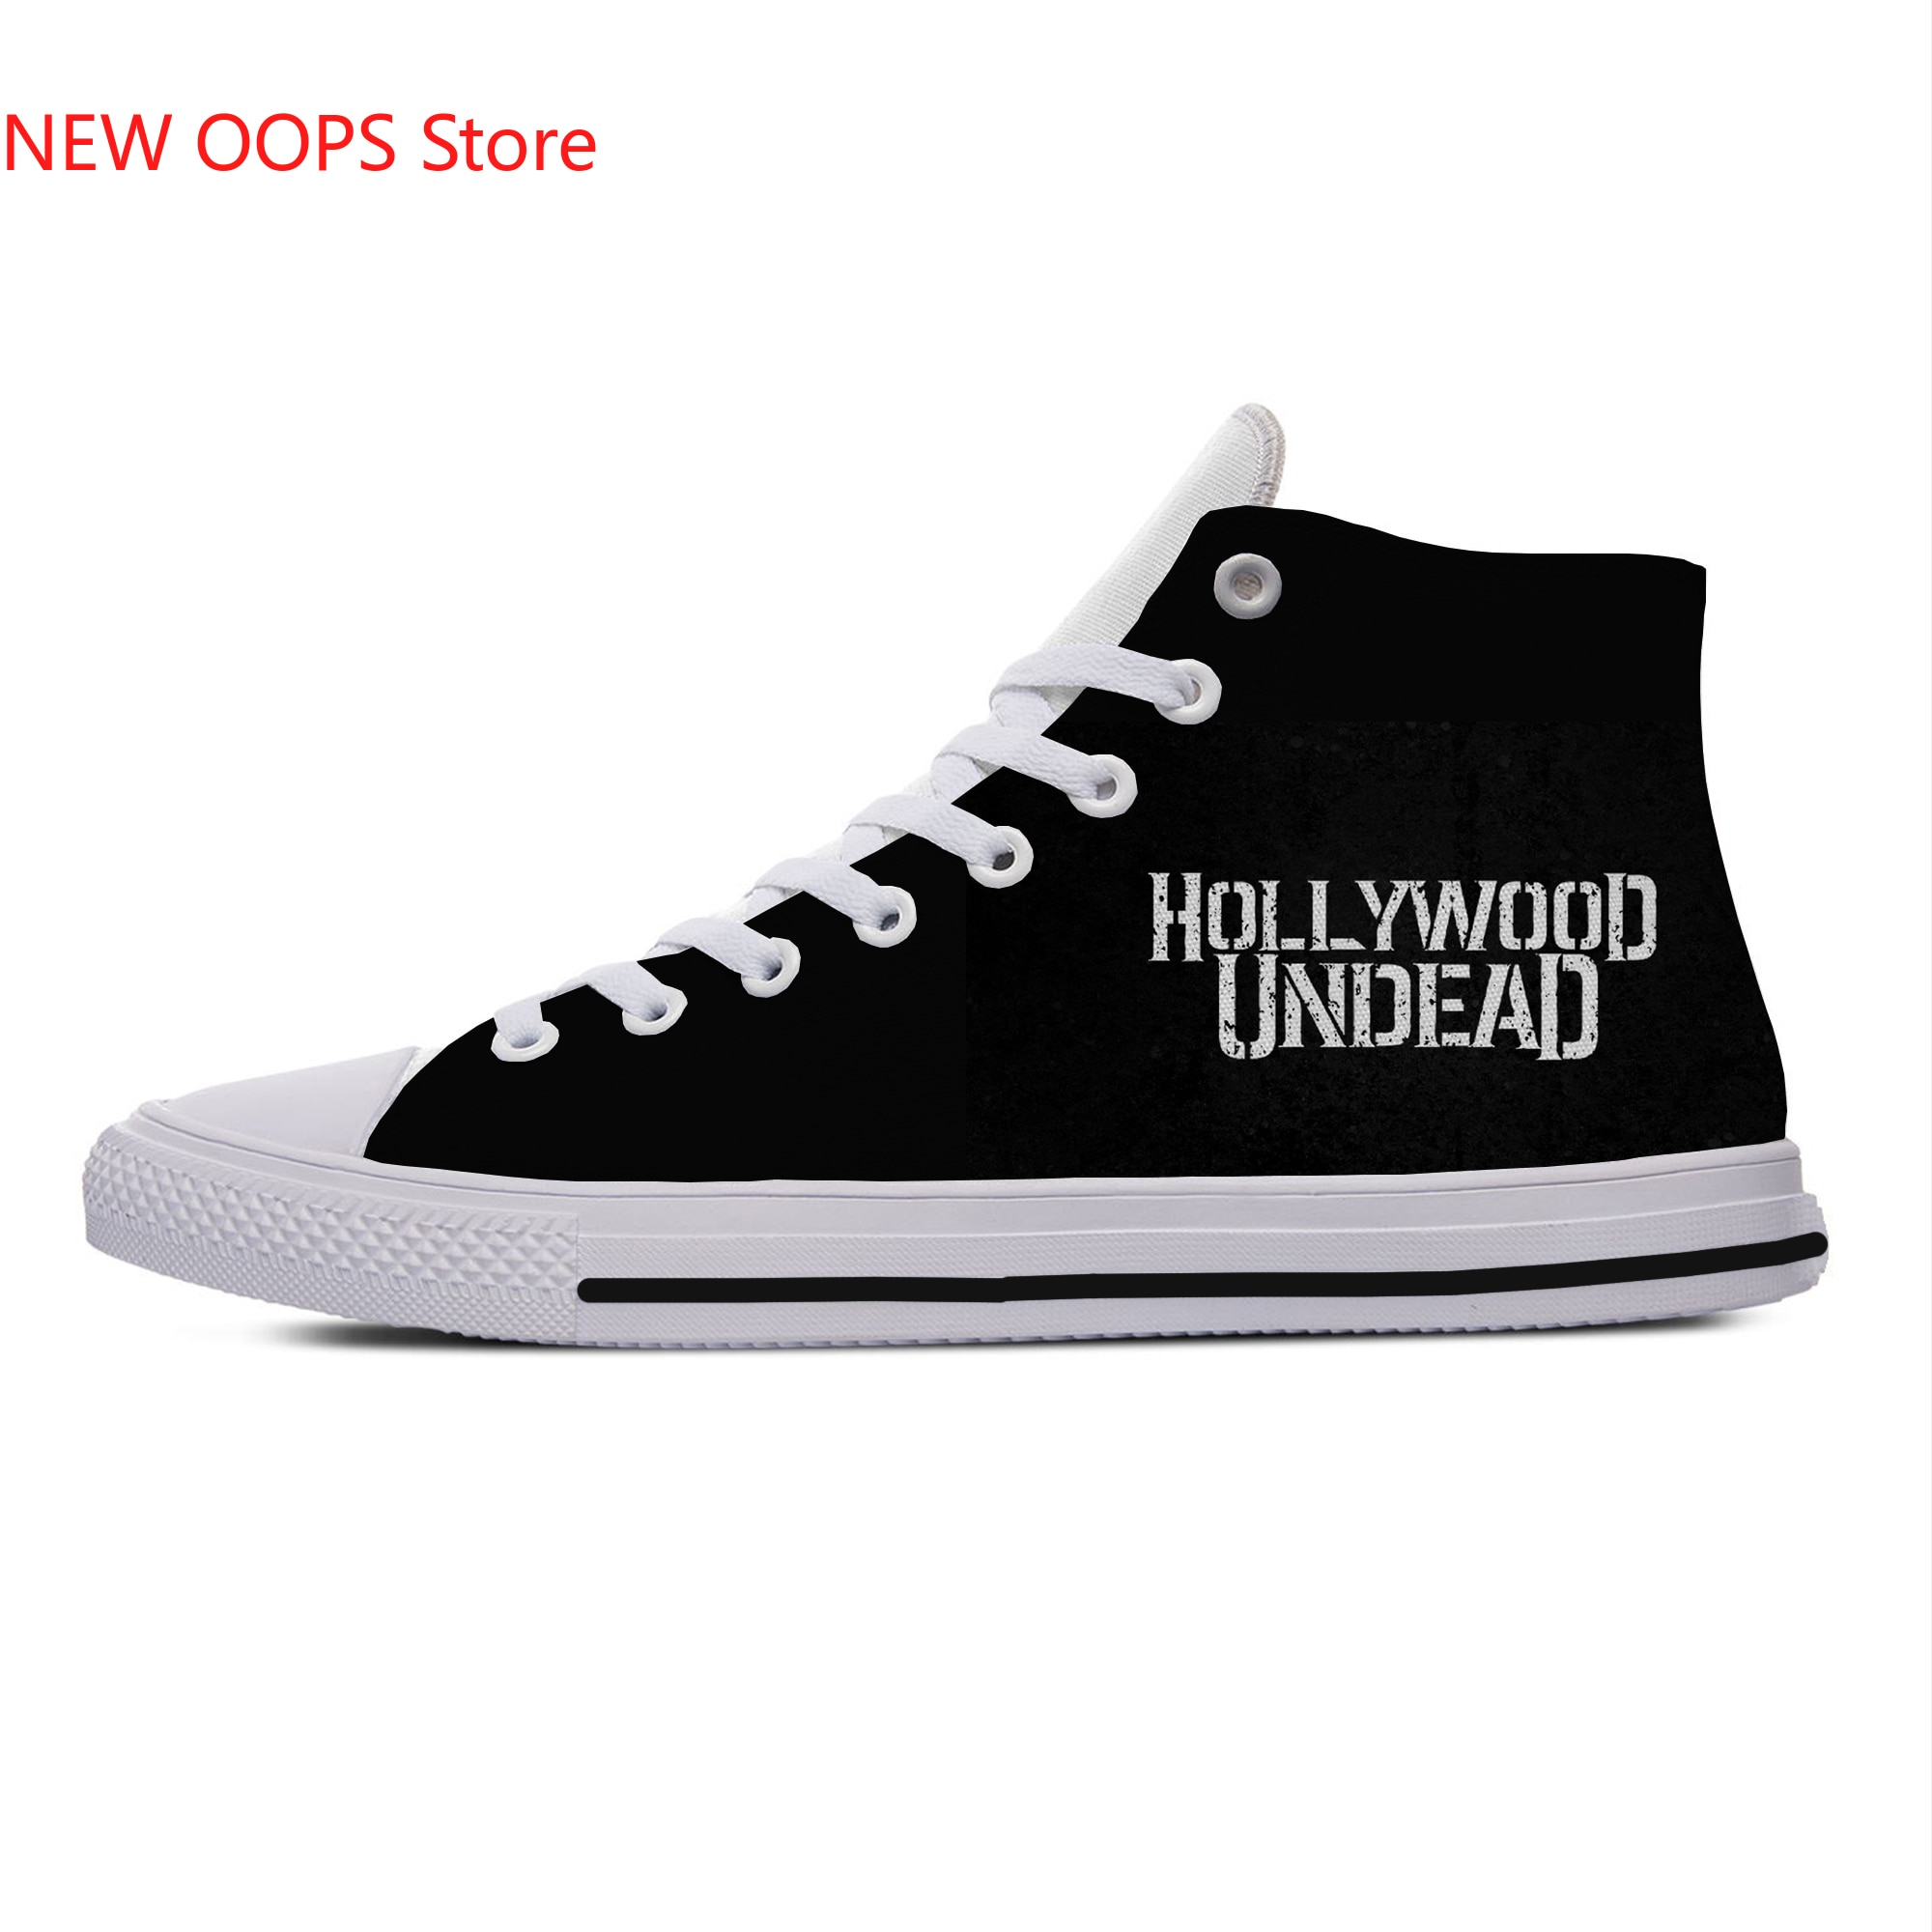 HOLLYWOOD UNDEAD New Arrive Fashion Lightweight High Top Canvas Shoes Men Women Casual Shoes Breathable Sneakers